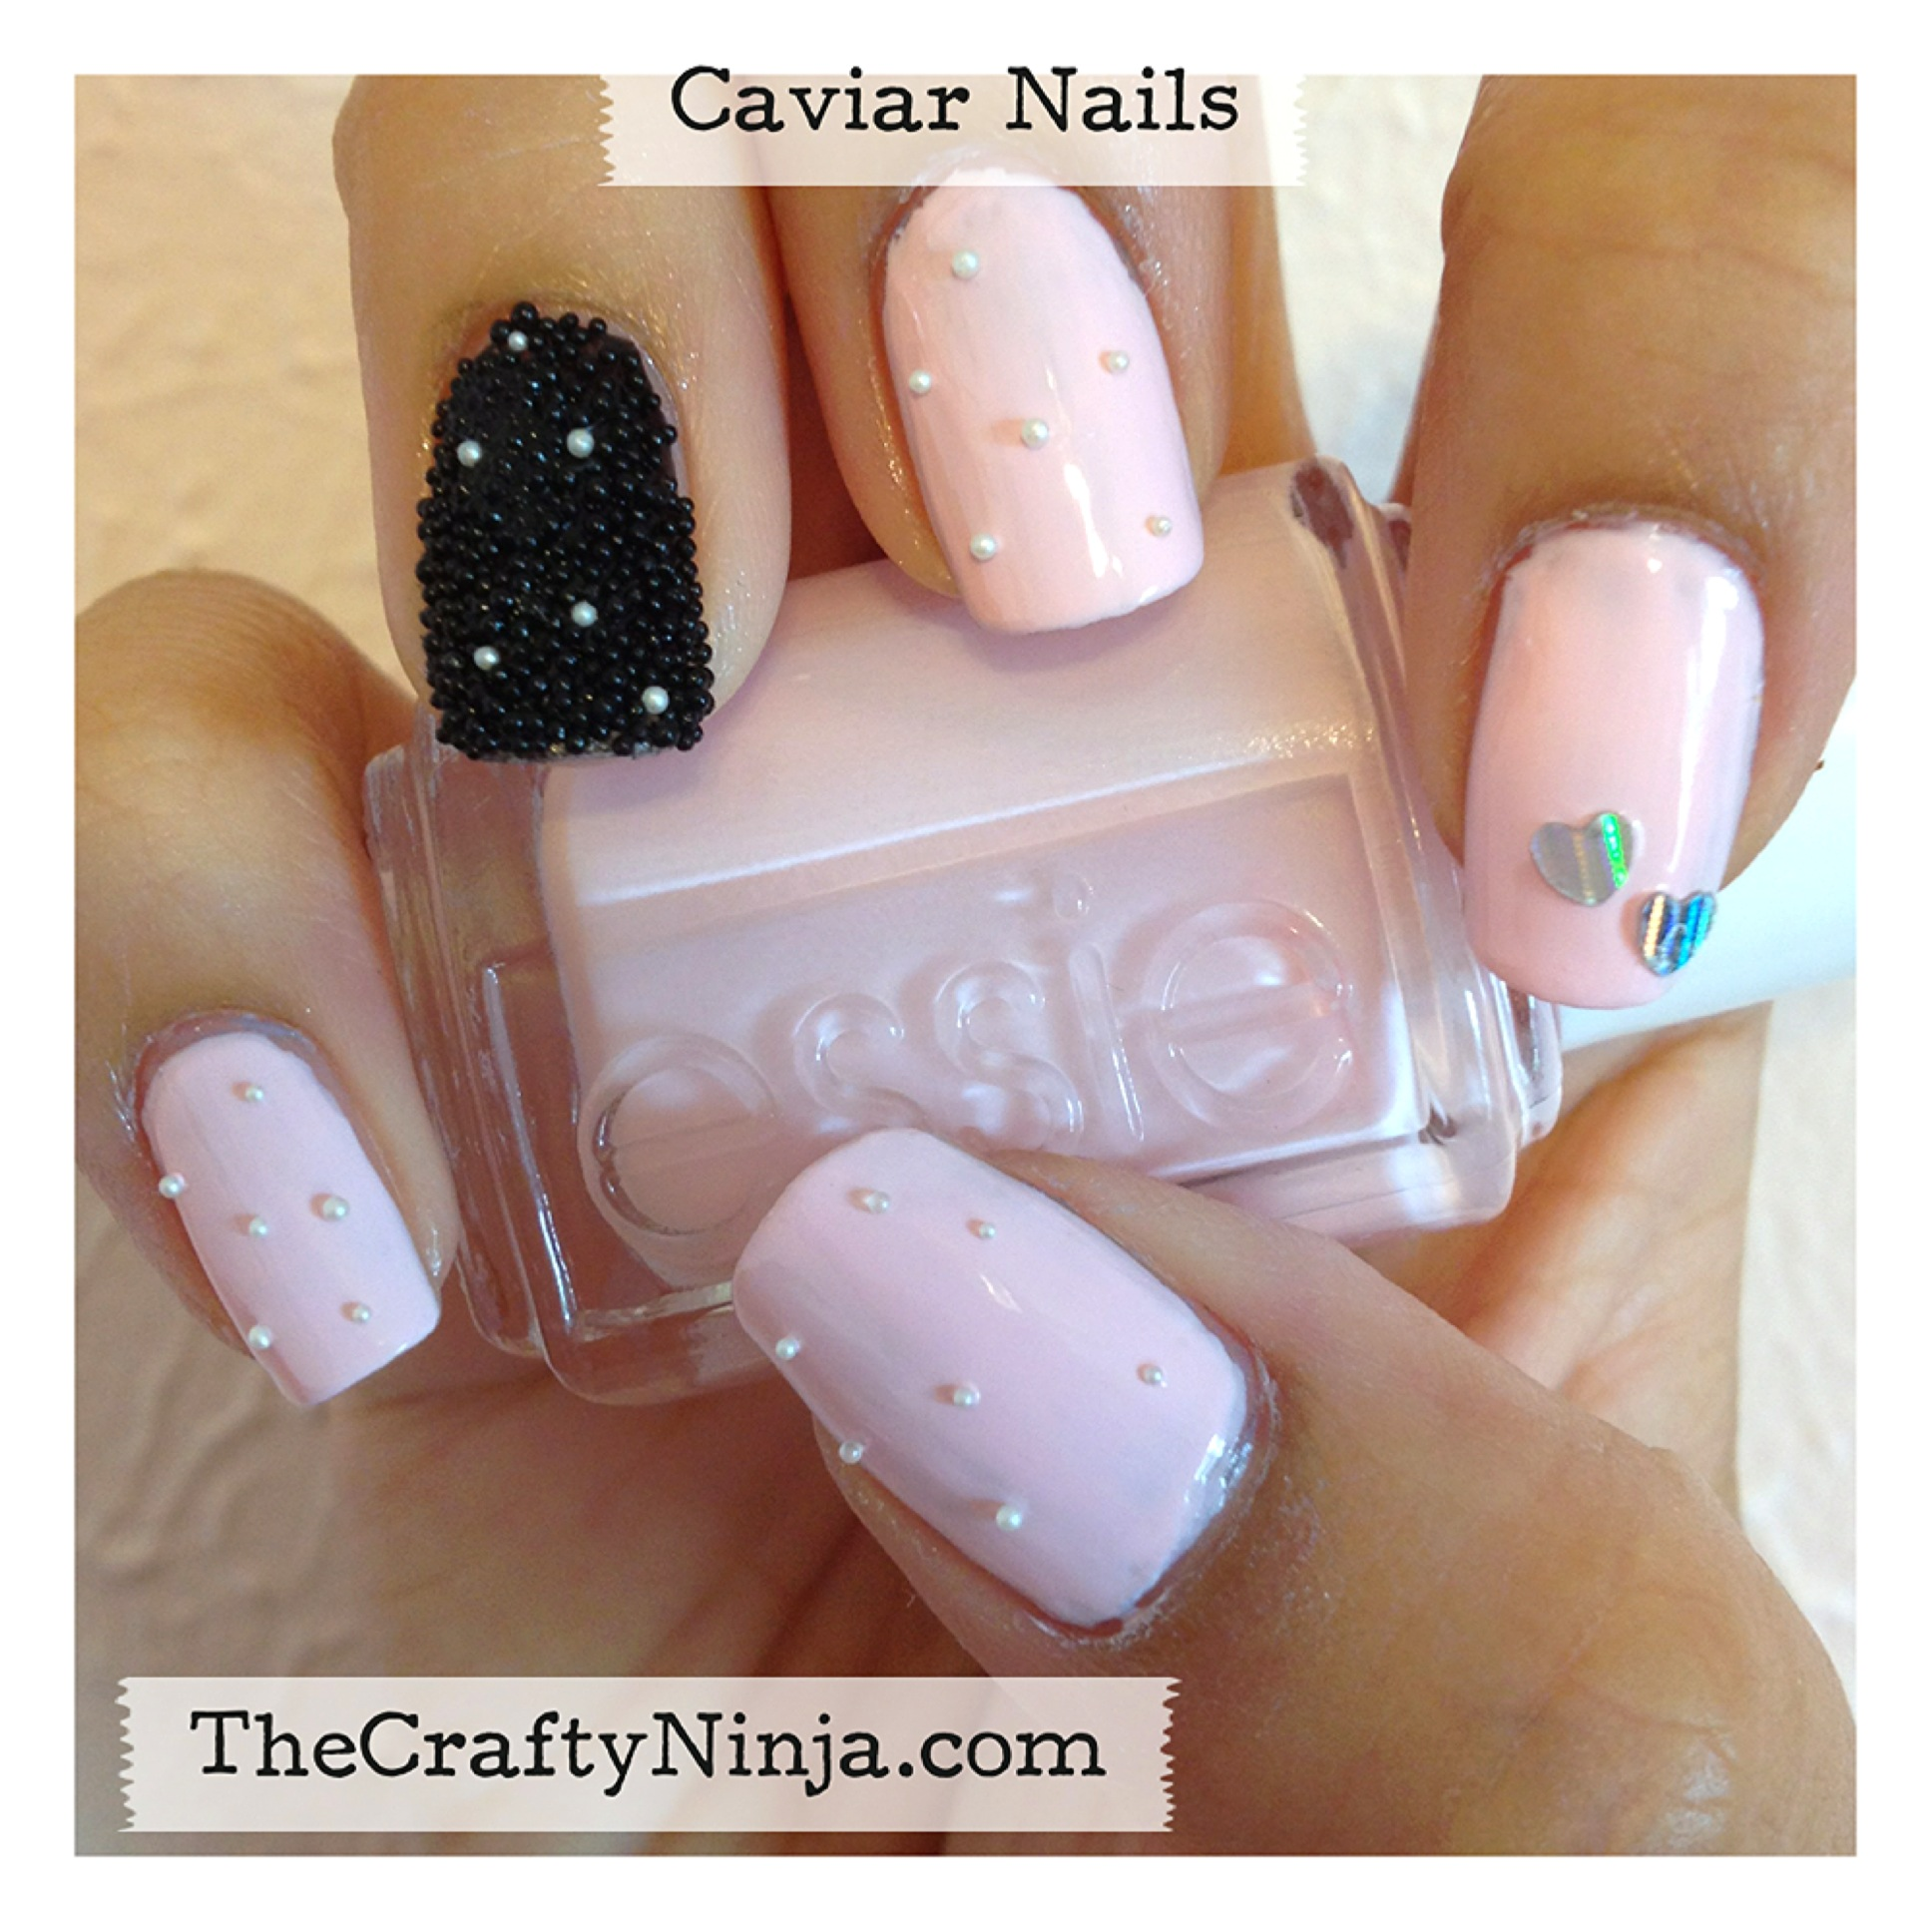 Caviar Nails The Crafty Ninja